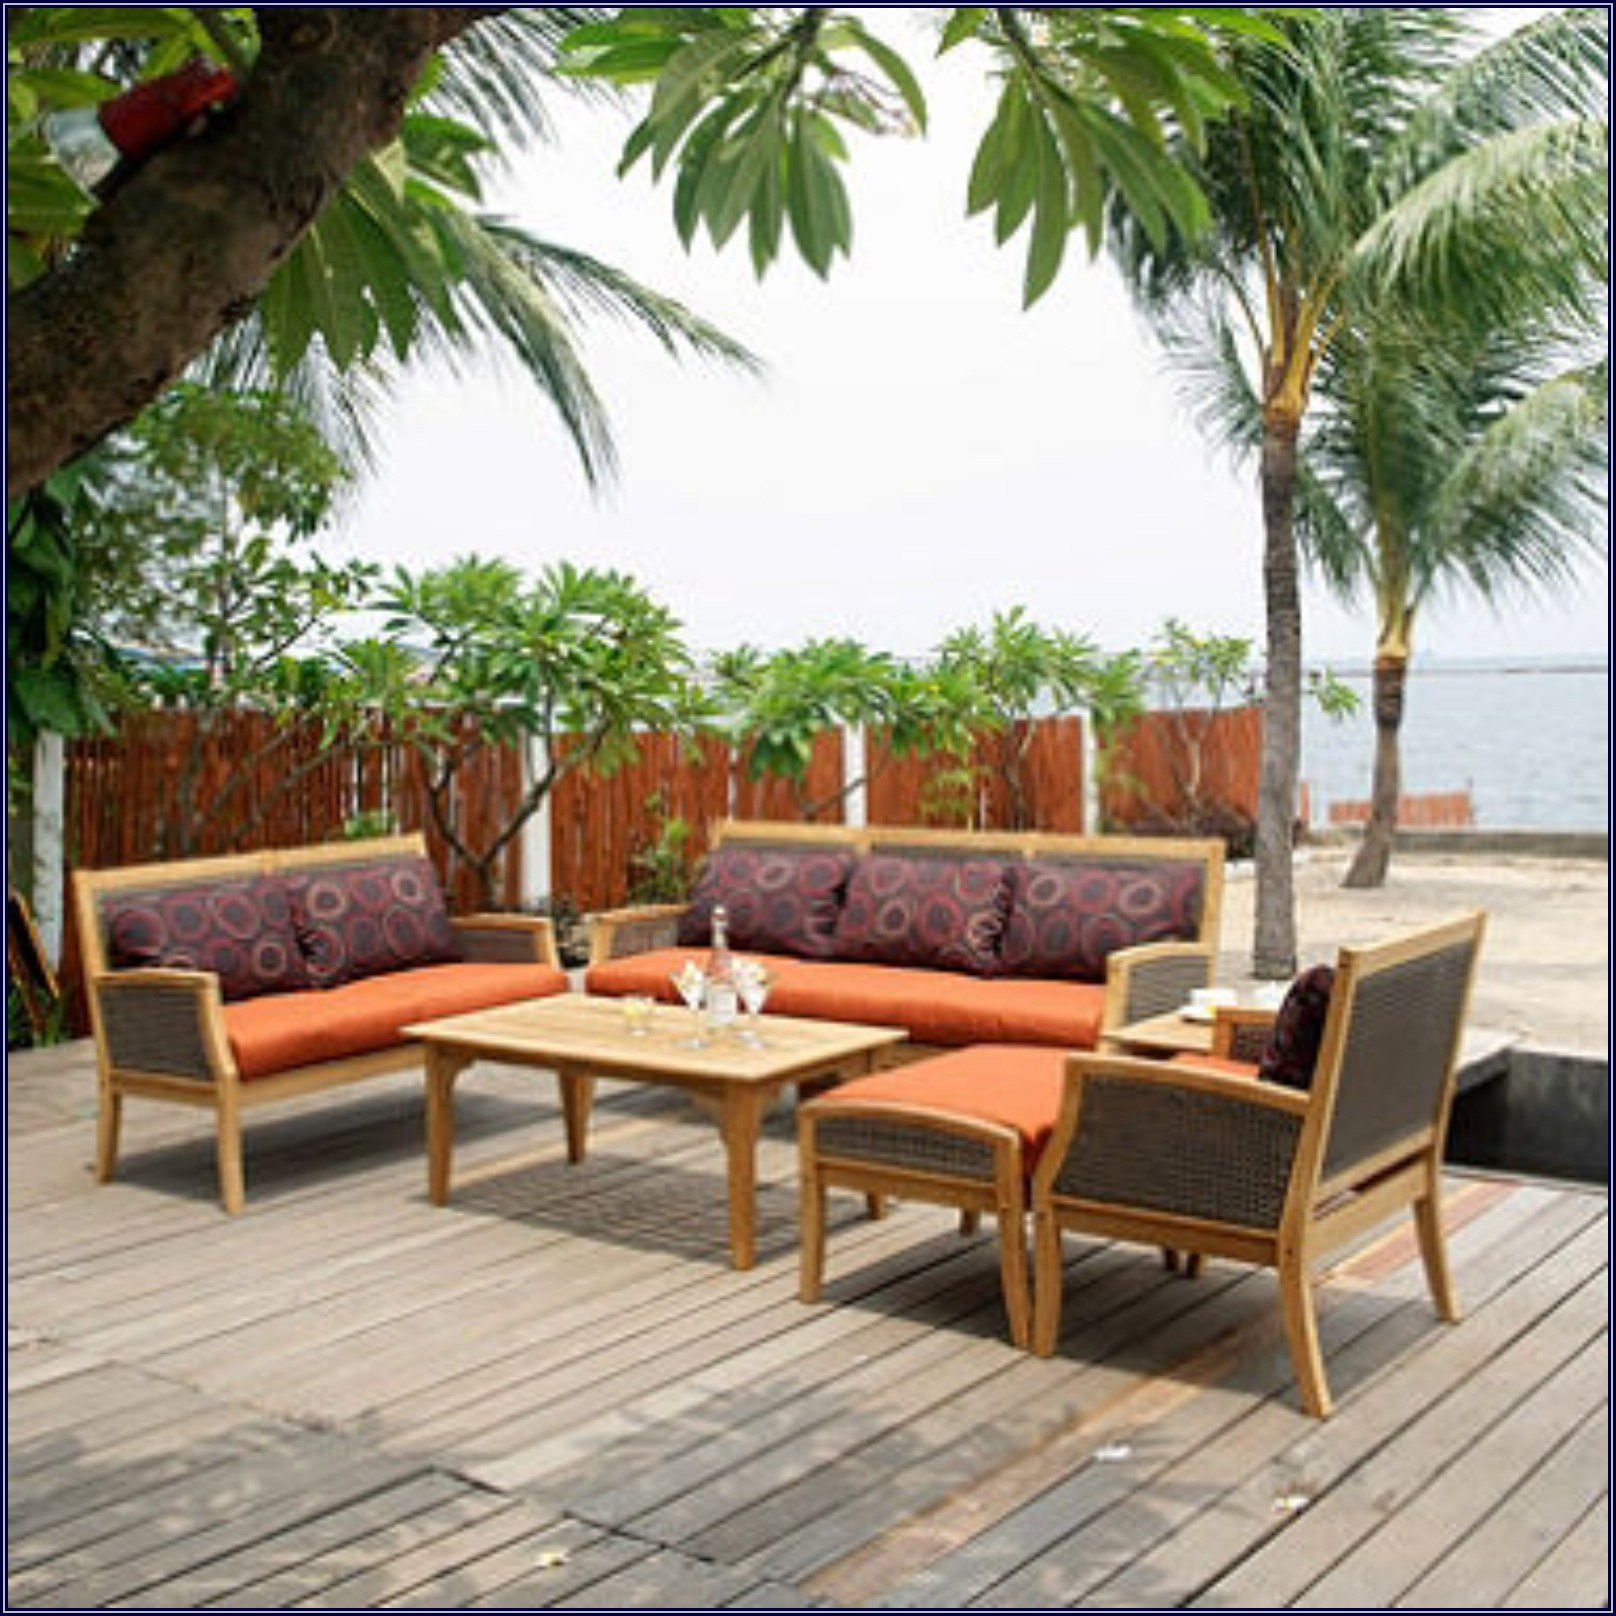 Kmart Outdoor Patio Cushions